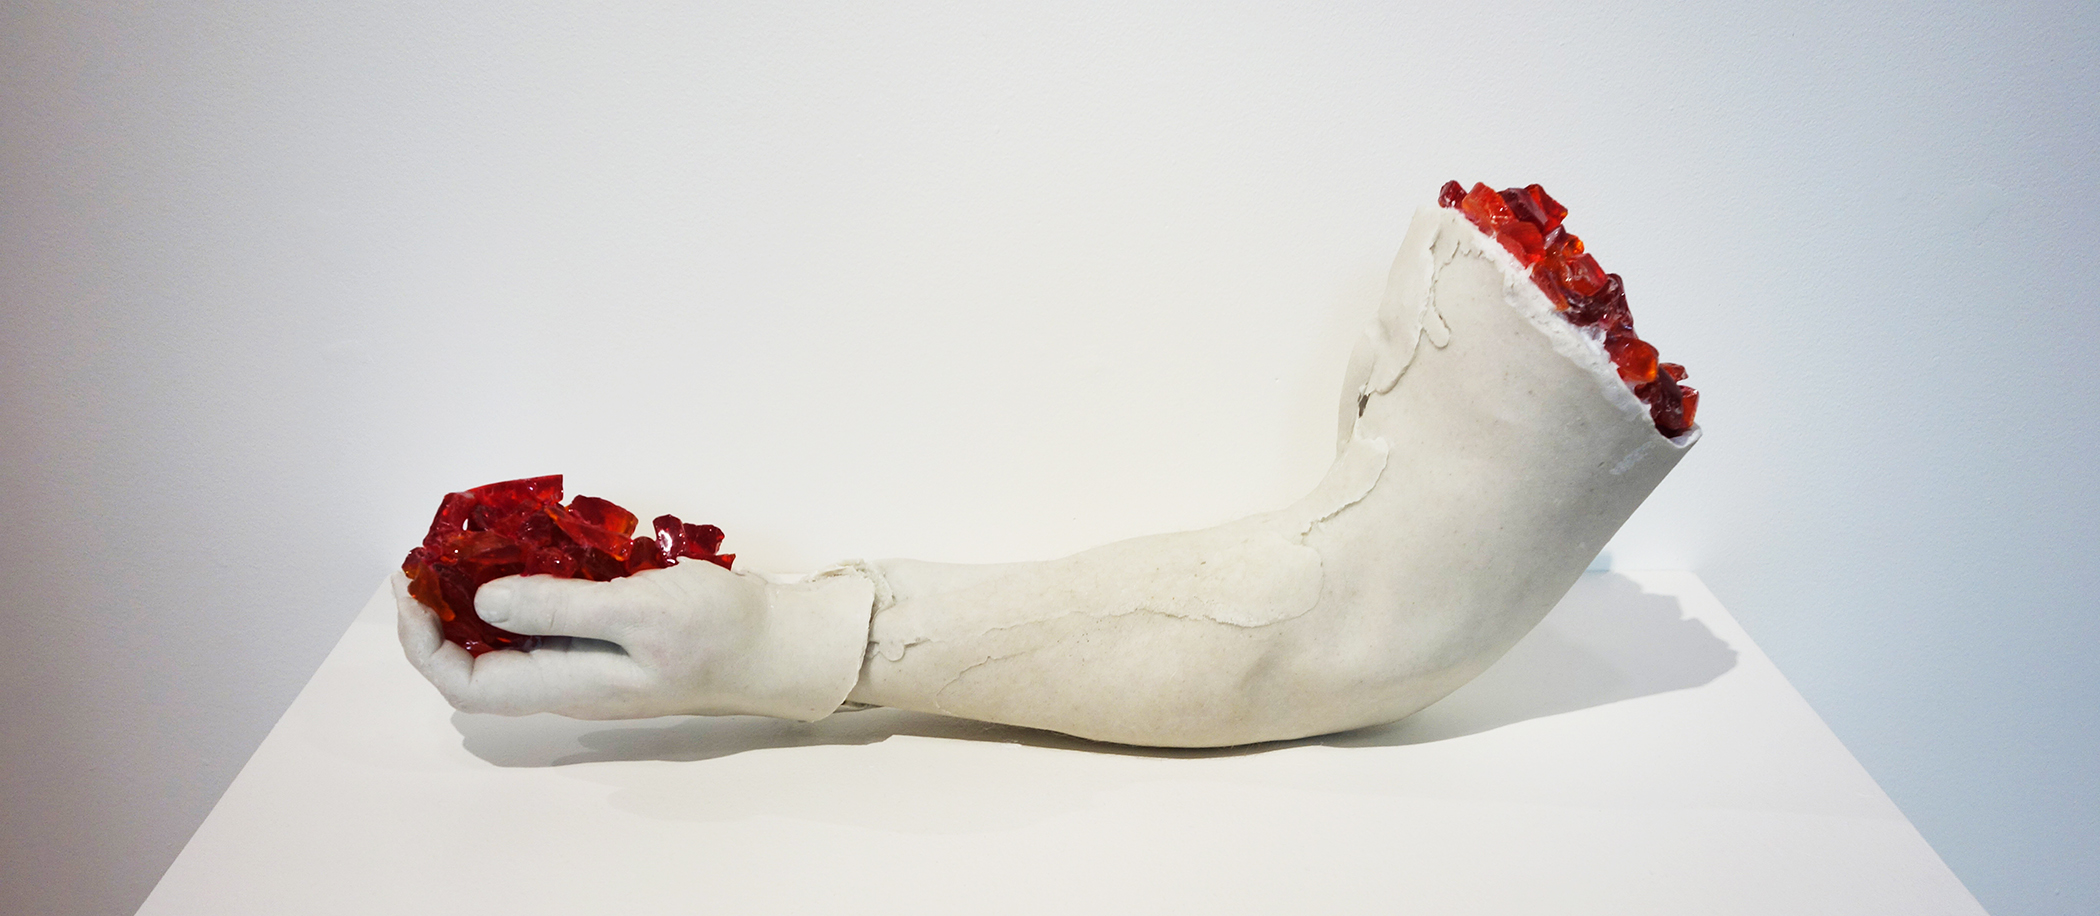 Fulcrum, 2013, cast marble, glass and human hair, 24x16x6 inches